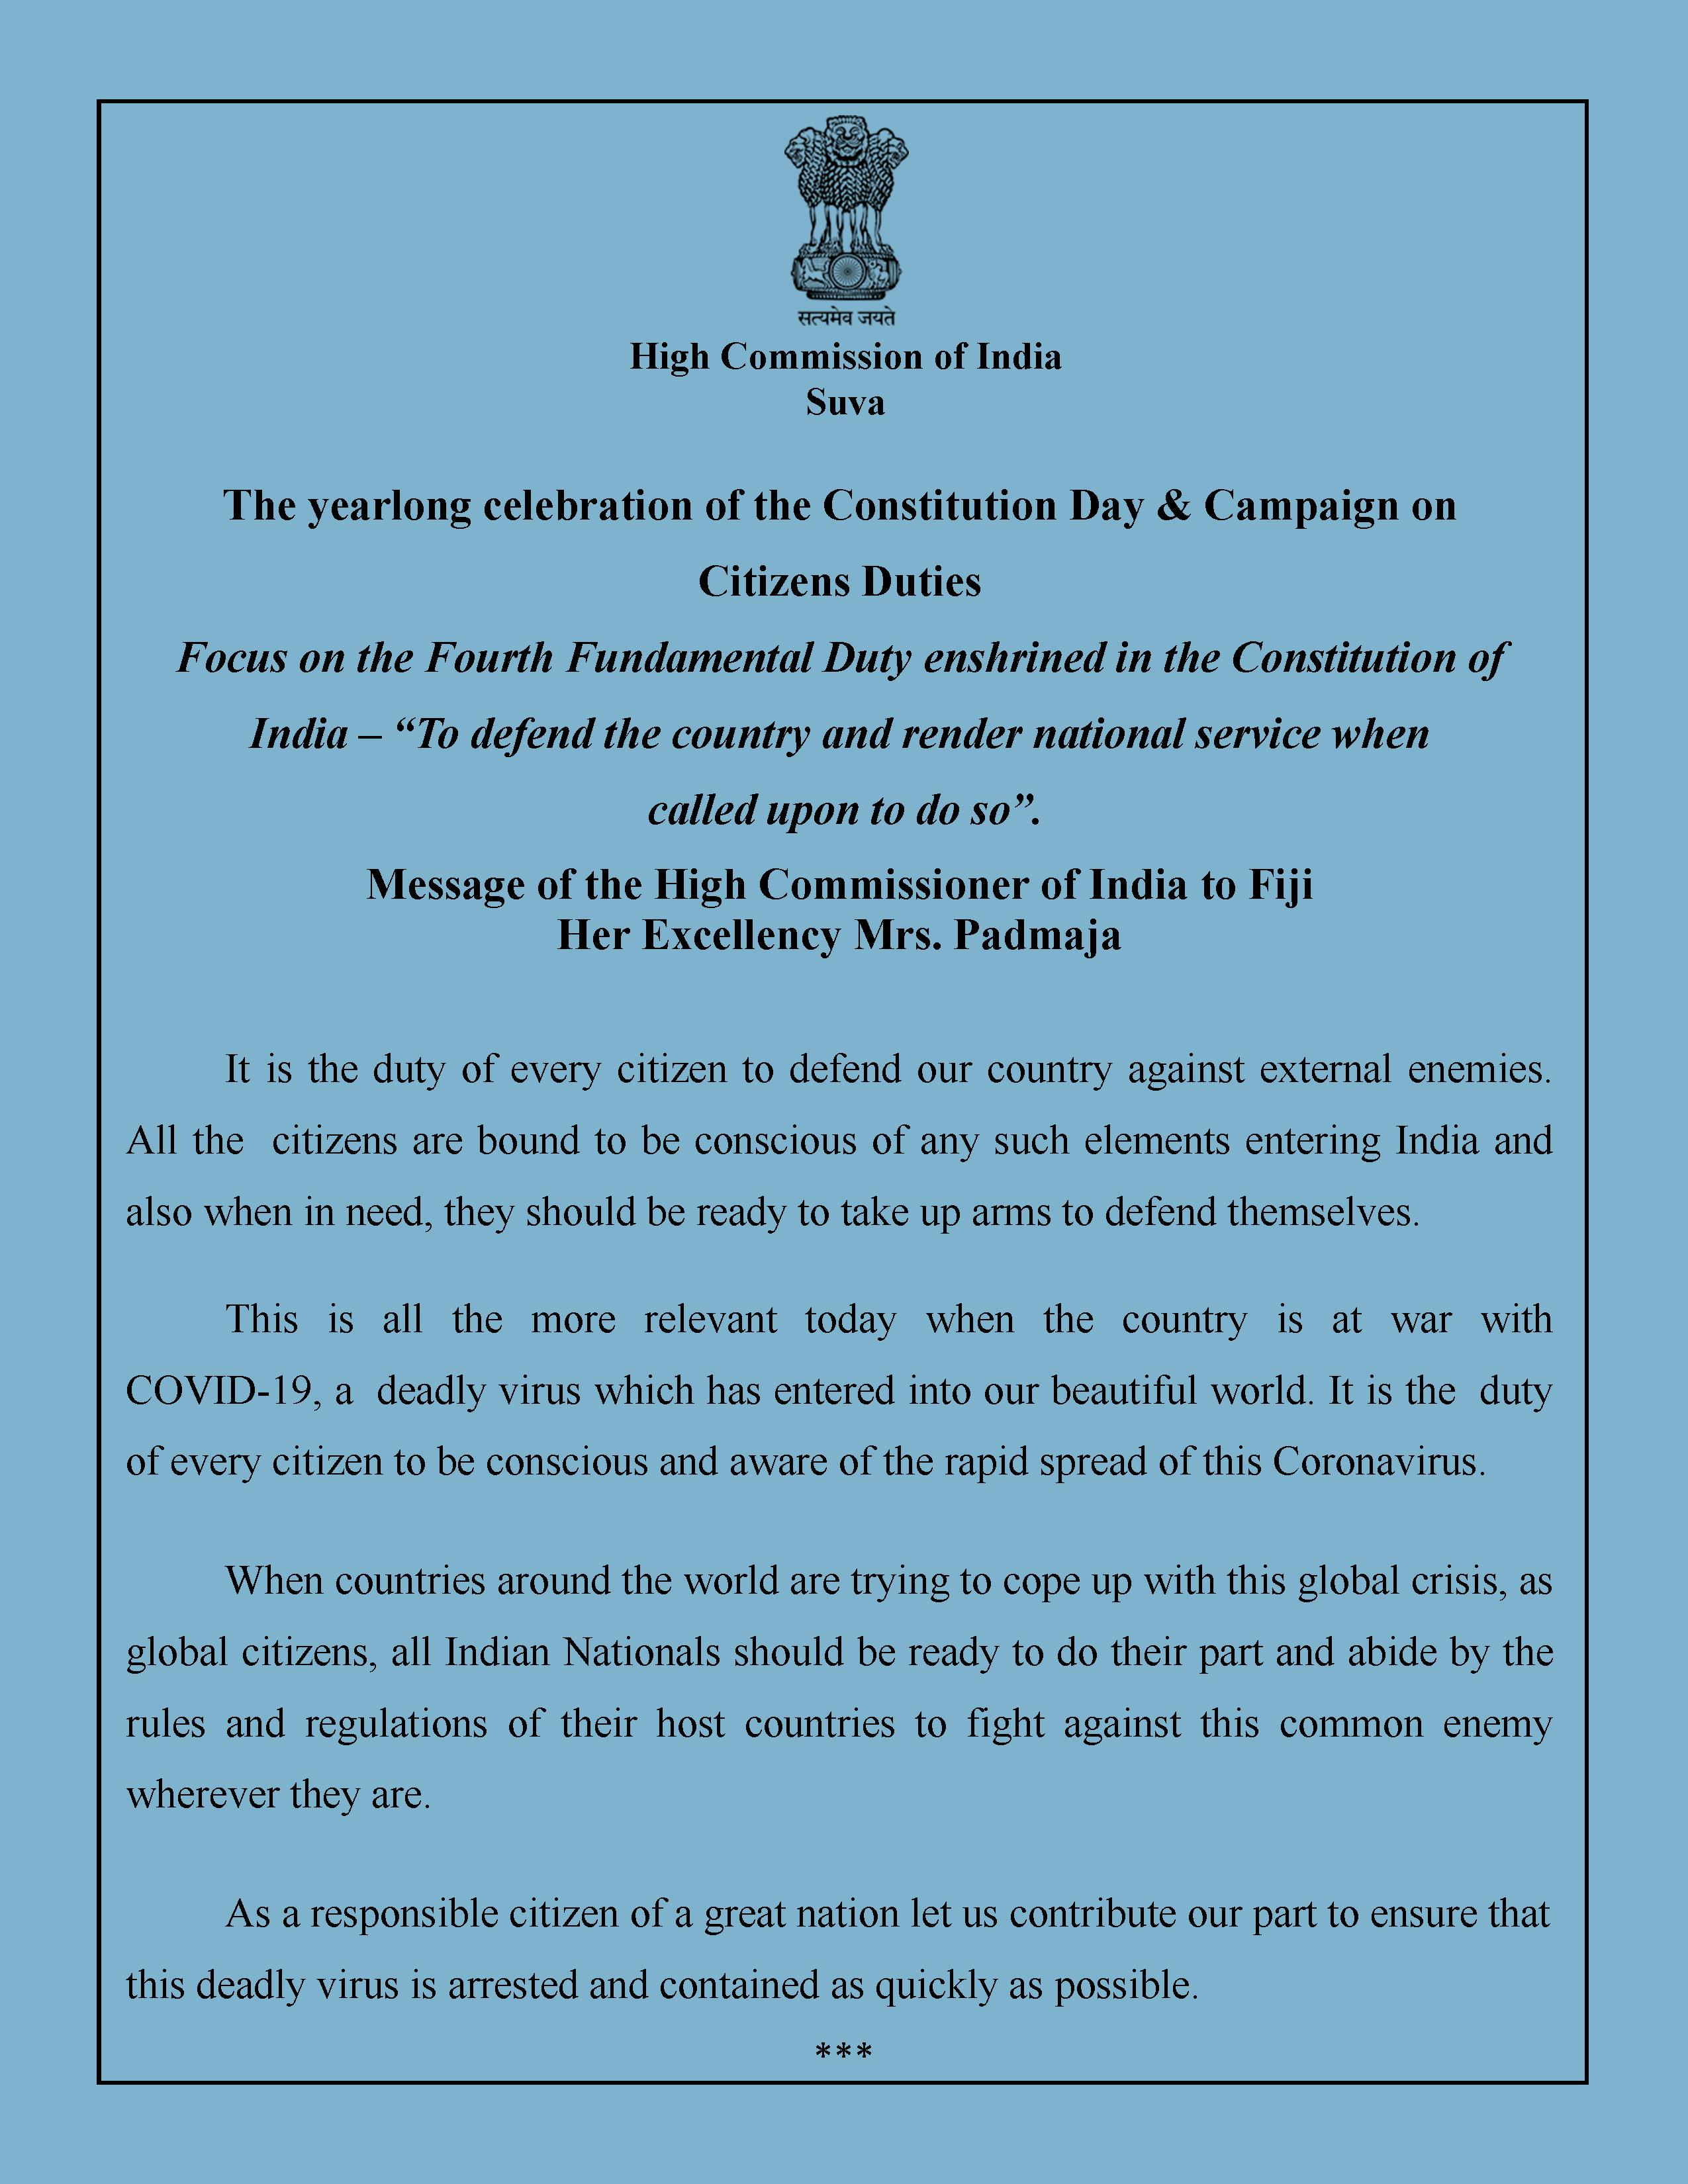 Message of the High Commissioner in connection with Constitution Day & Campaign on Citizens Duties